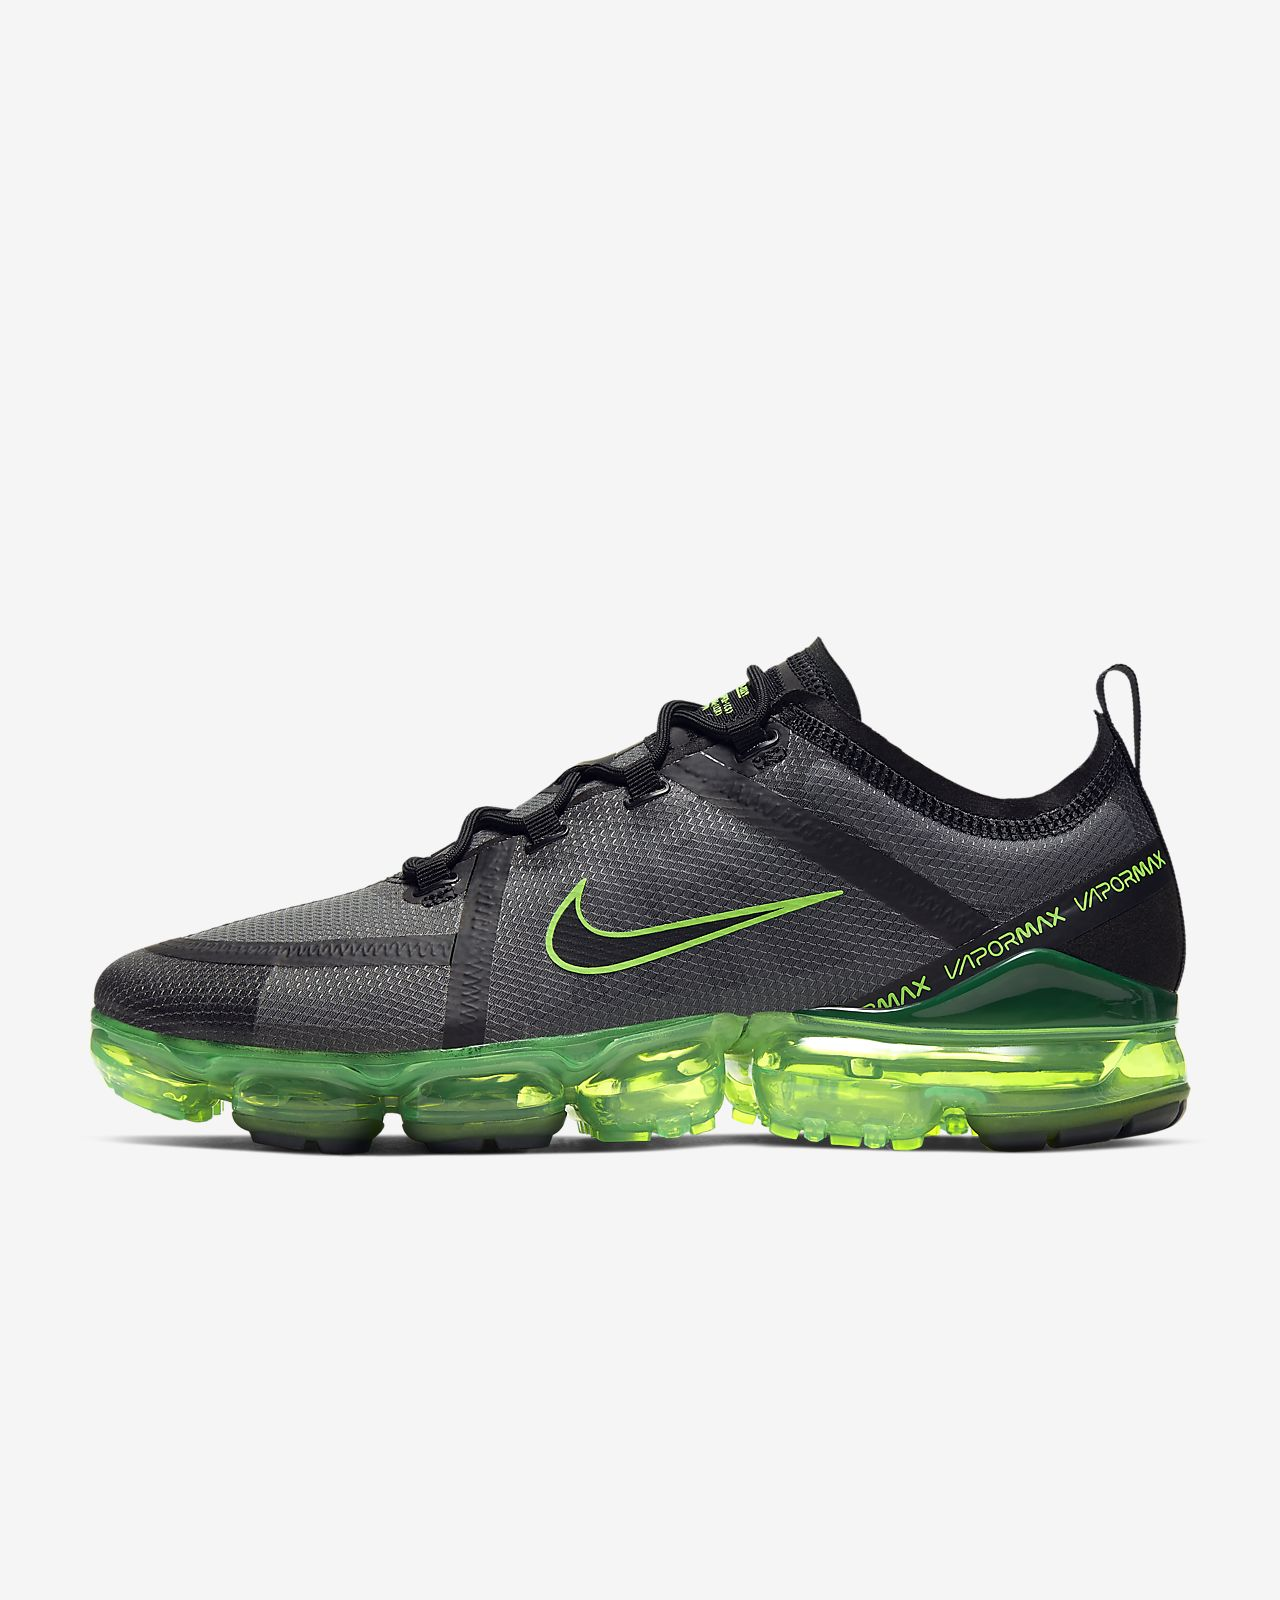 Nike Air VaporMax 2019 Shoe